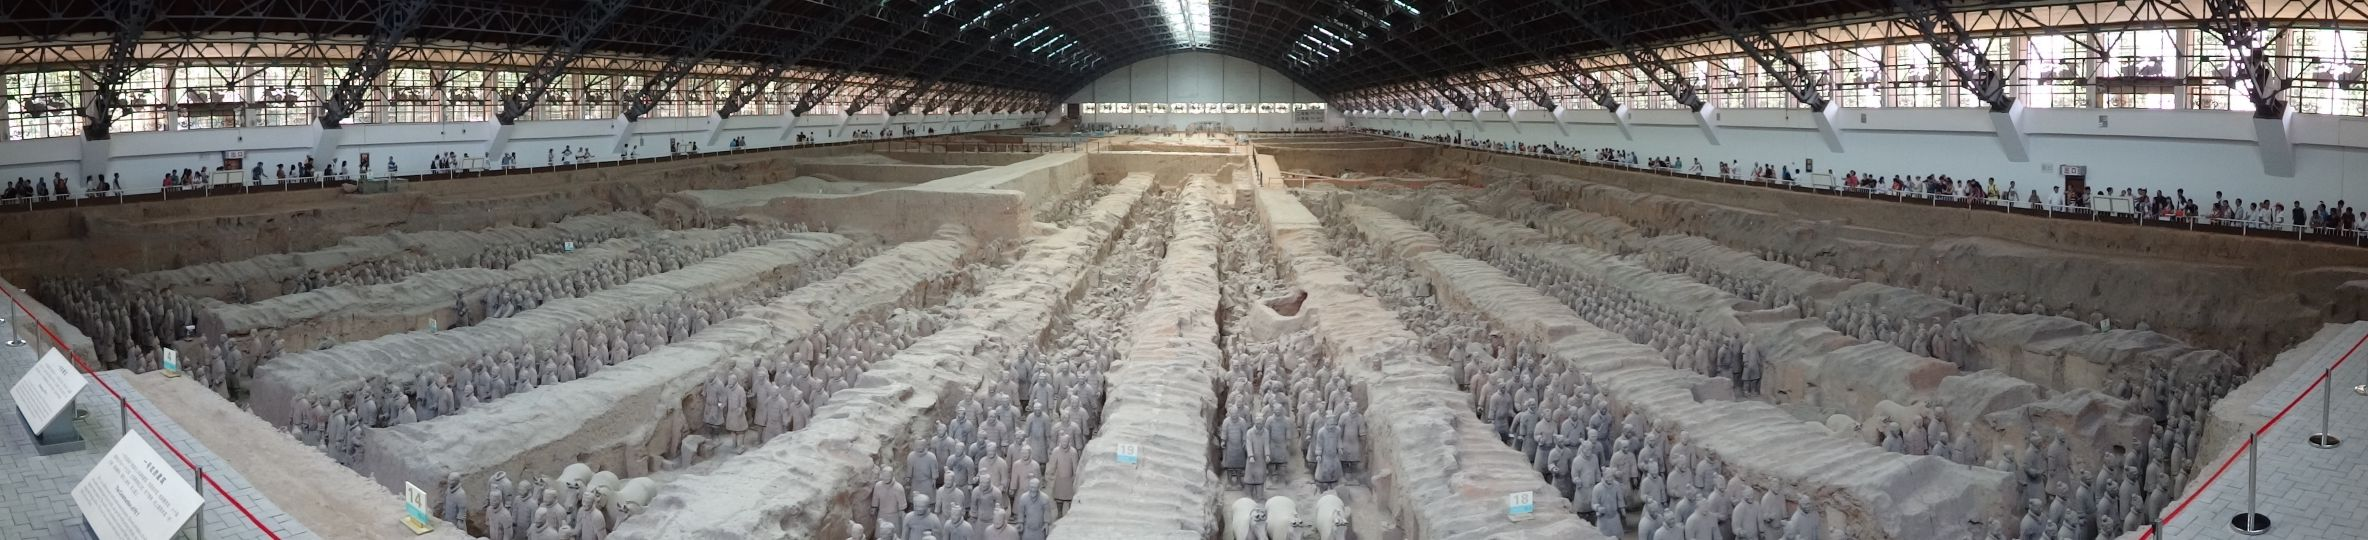 Terracotta Warriors near Xi'an